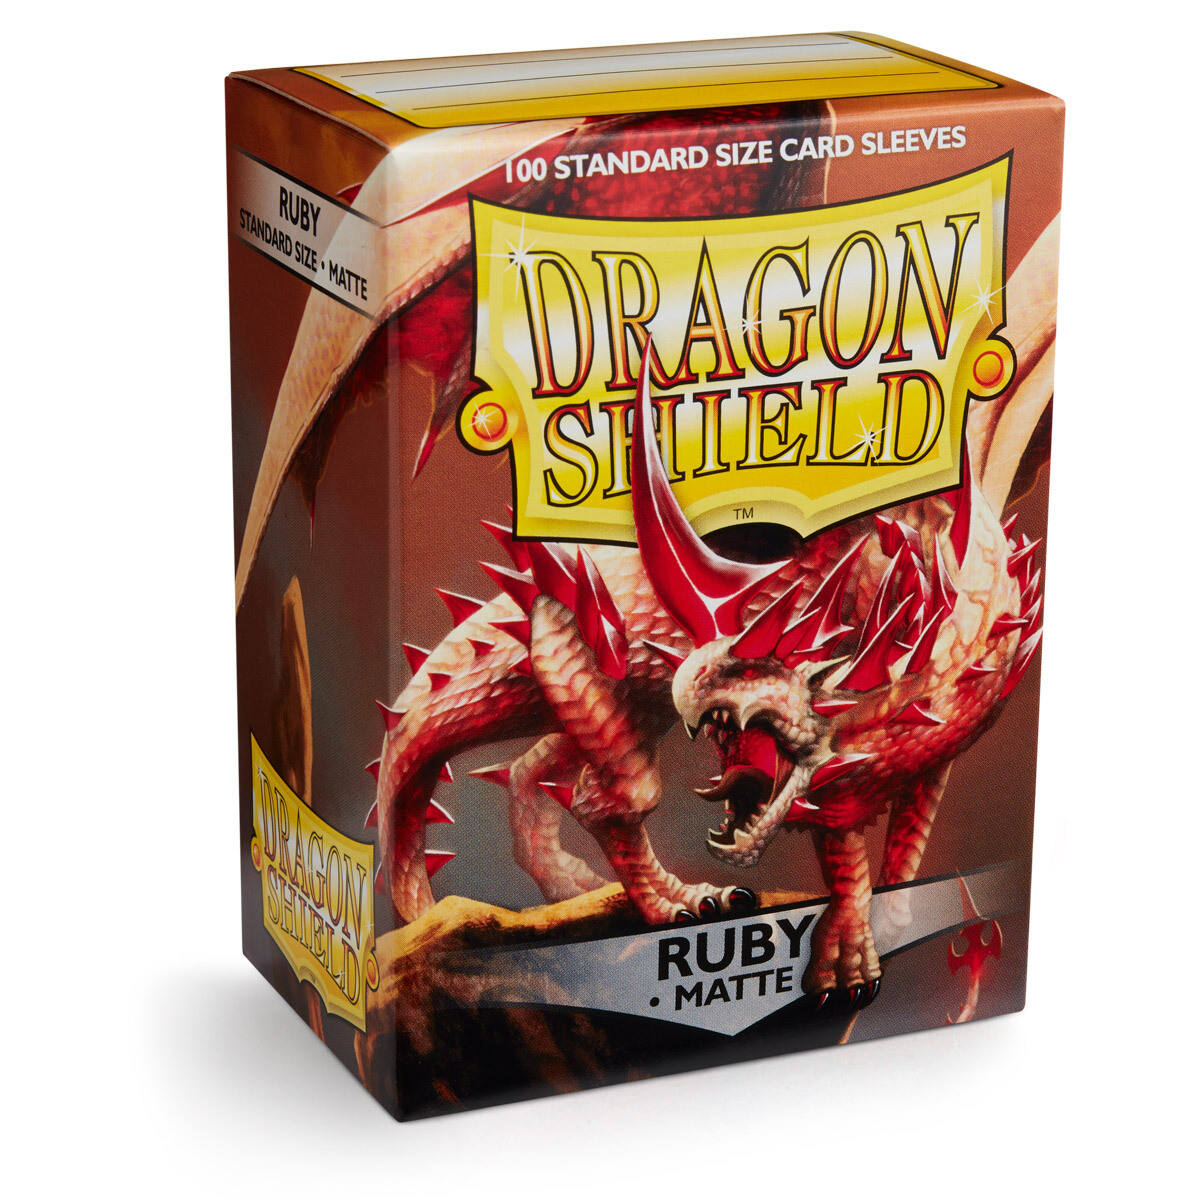 Dragon Shield 100 Sleeves - Matte Ruby